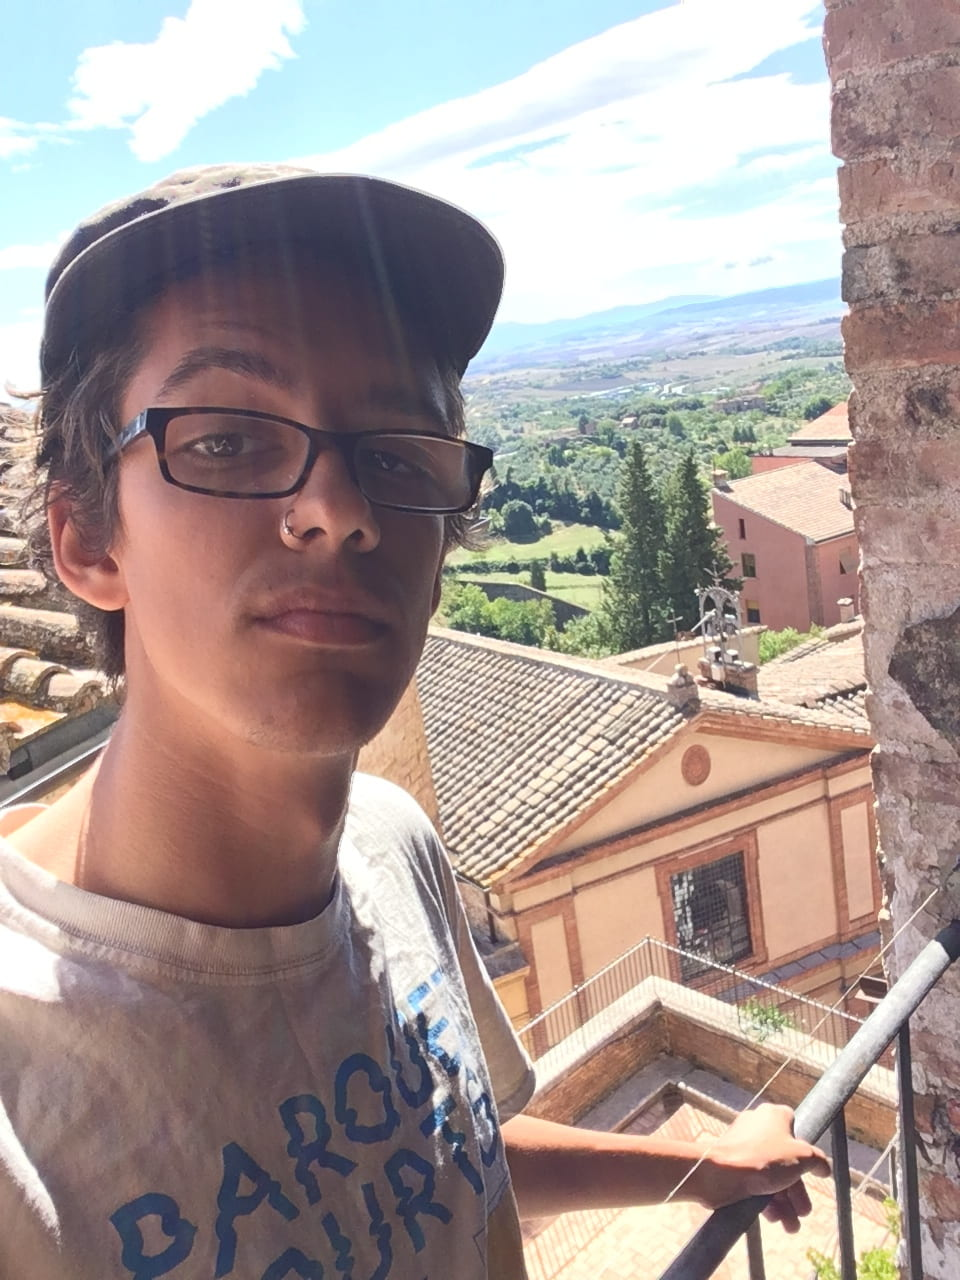 Handsome young man standing before Tuscan landscape